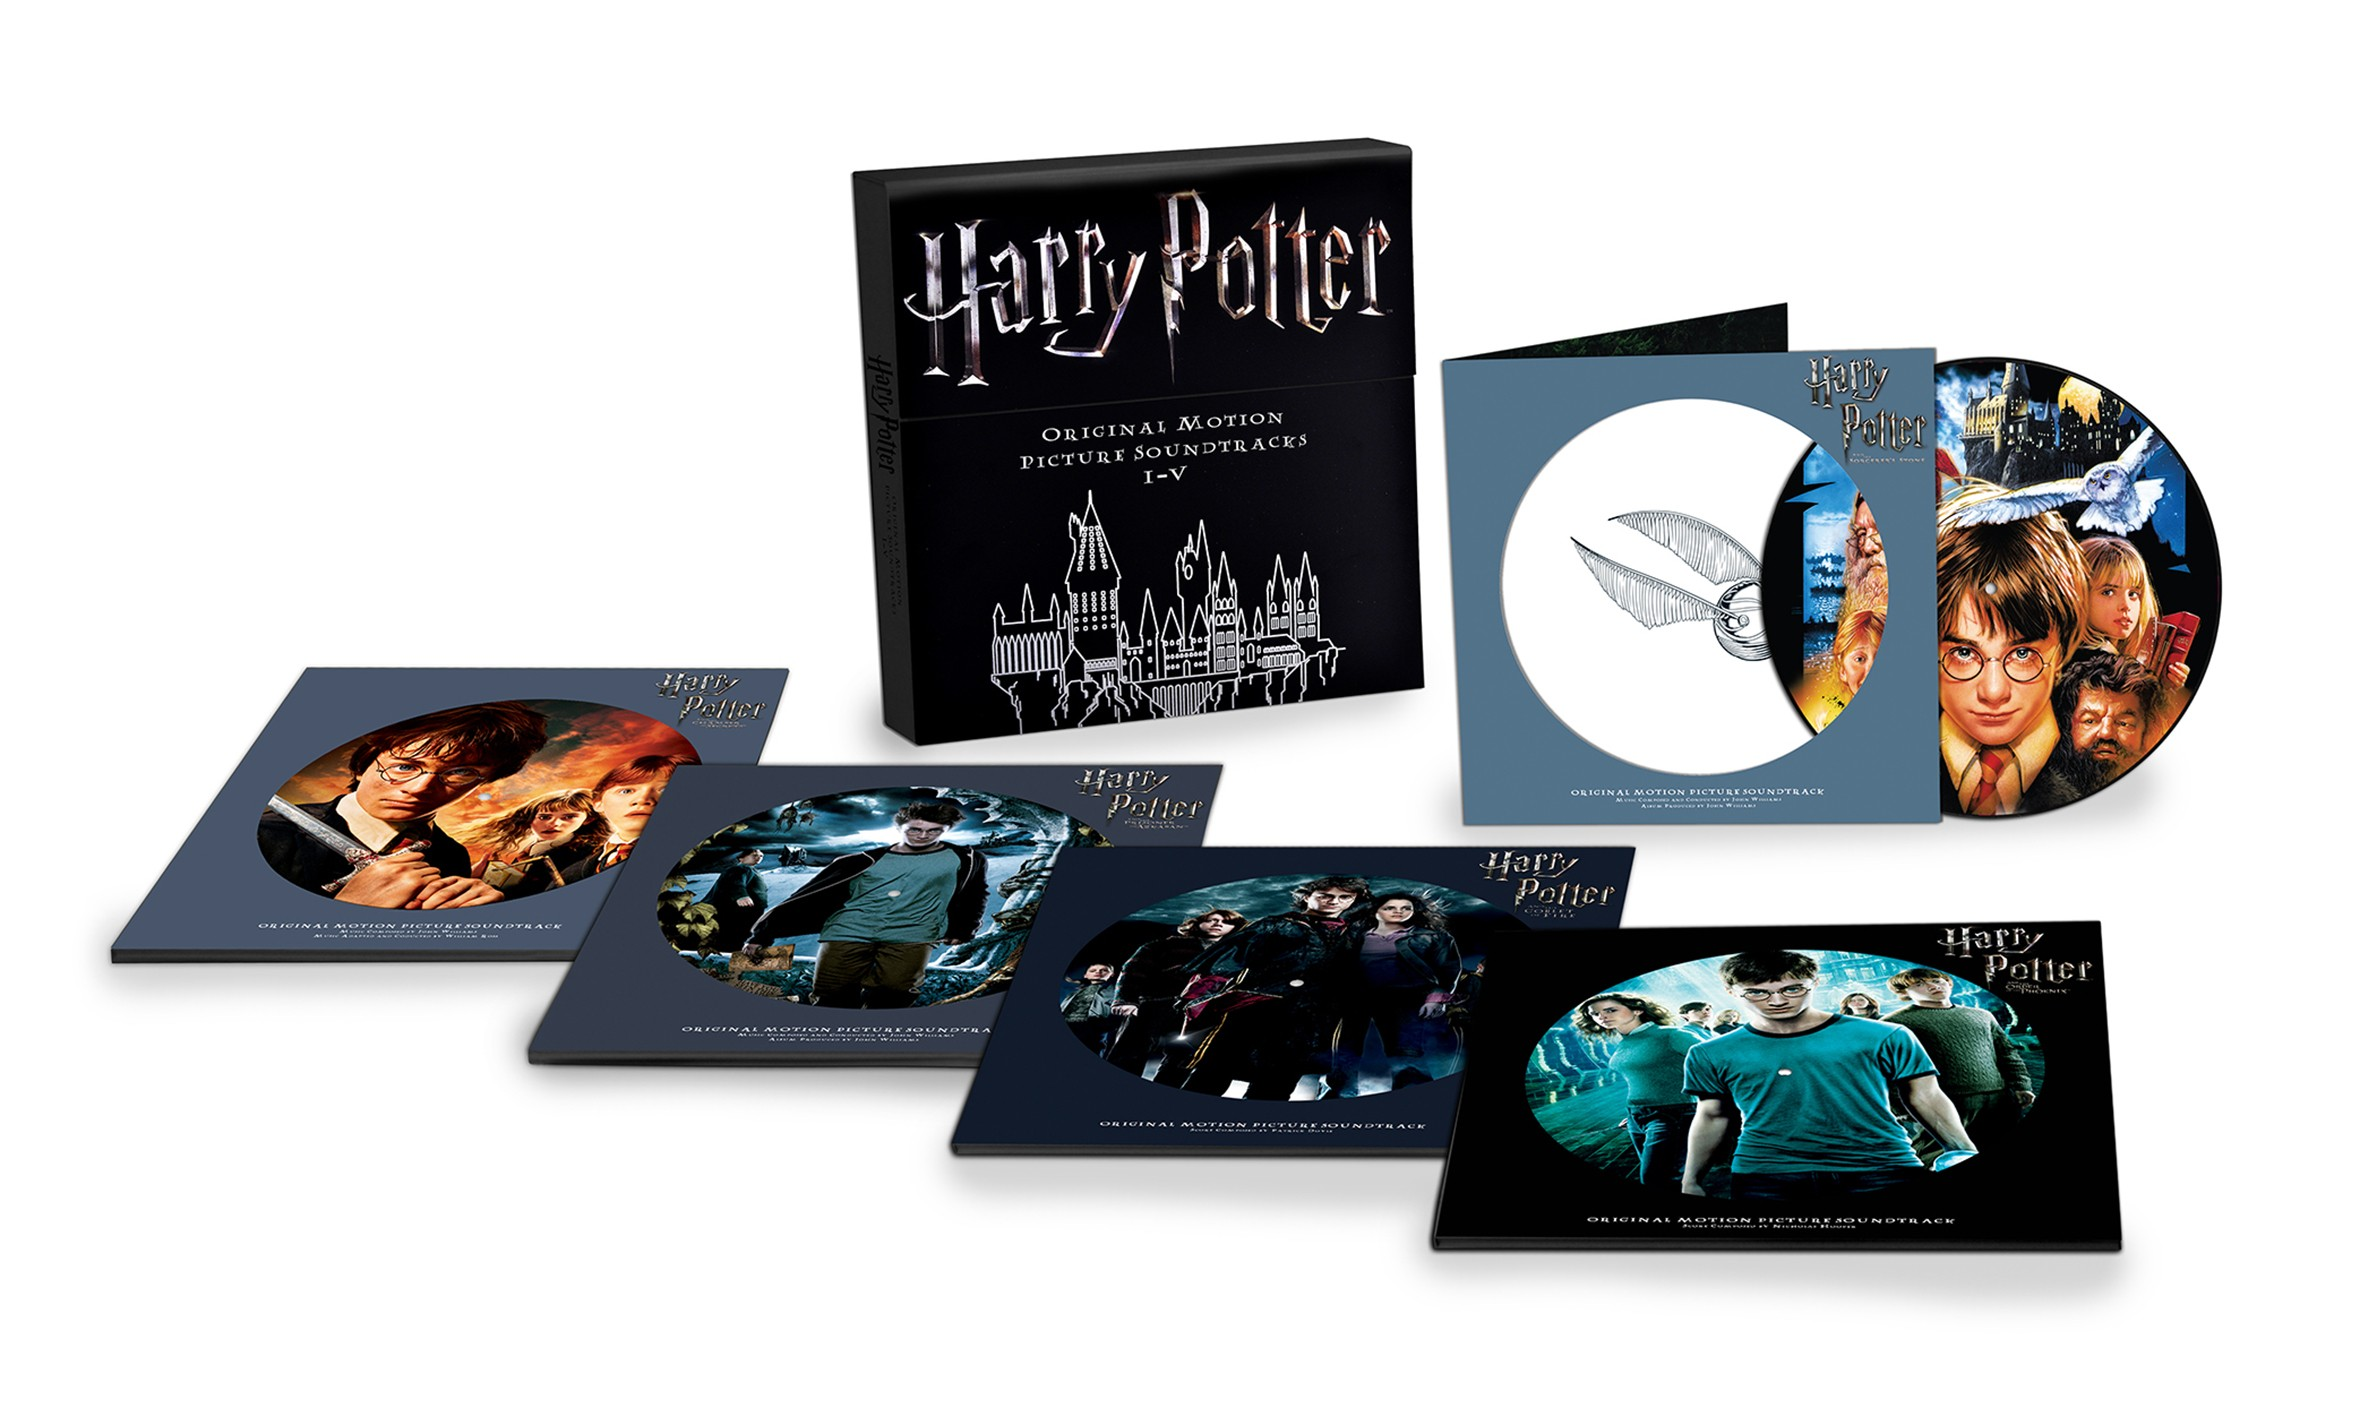 Soundtrack - Harry Potter: Original Motion Picture Soundtracks I-V Vinyl Boxset